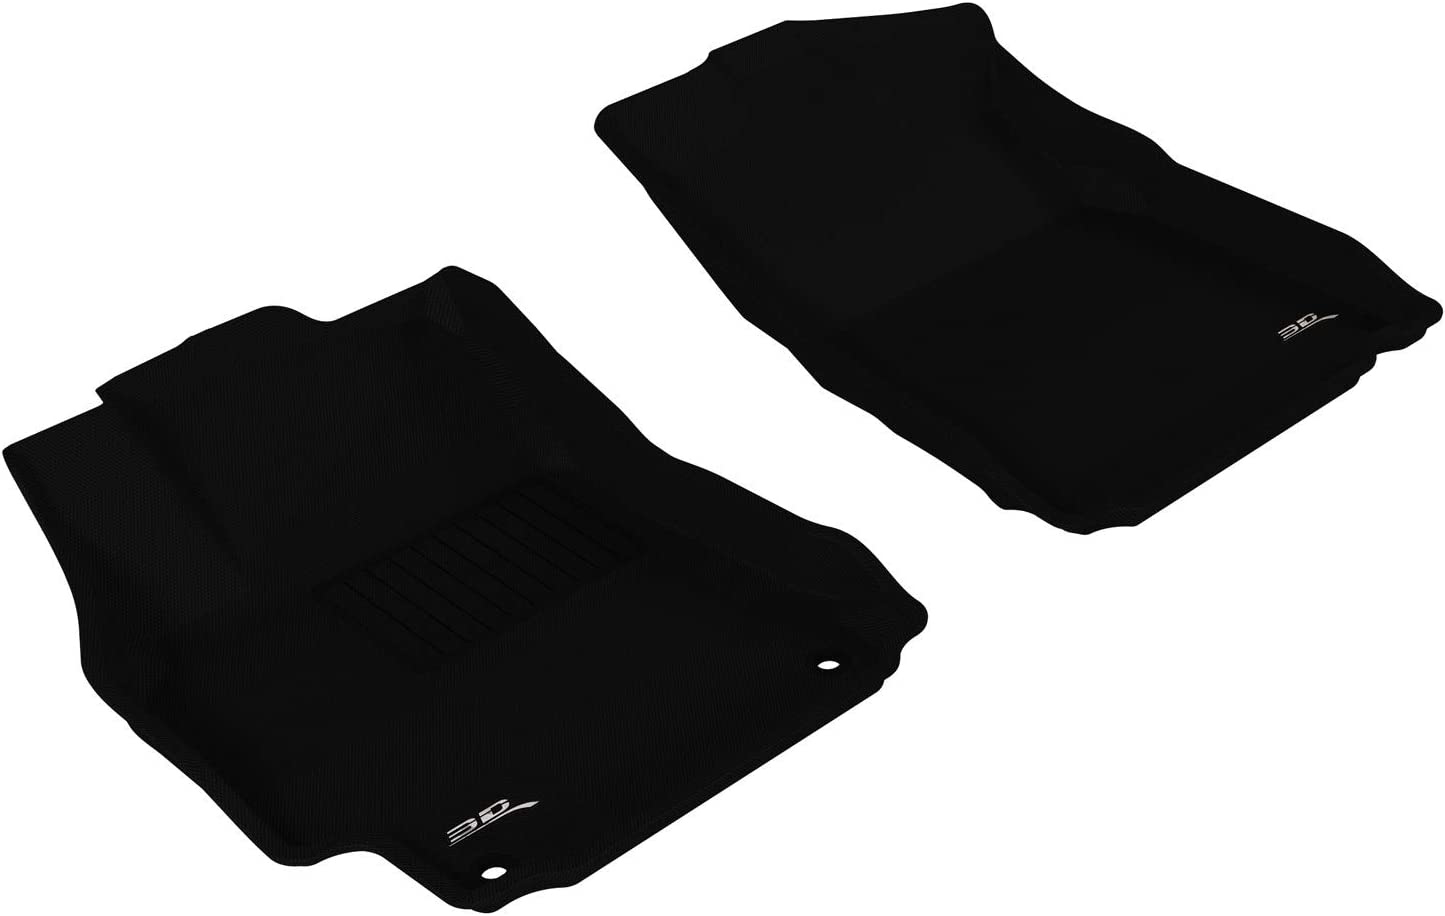 3D MAXpider Front Row Custom Fit All-Weather Floor Mat for Select Toyota Camry Models Kagu Rubber Black